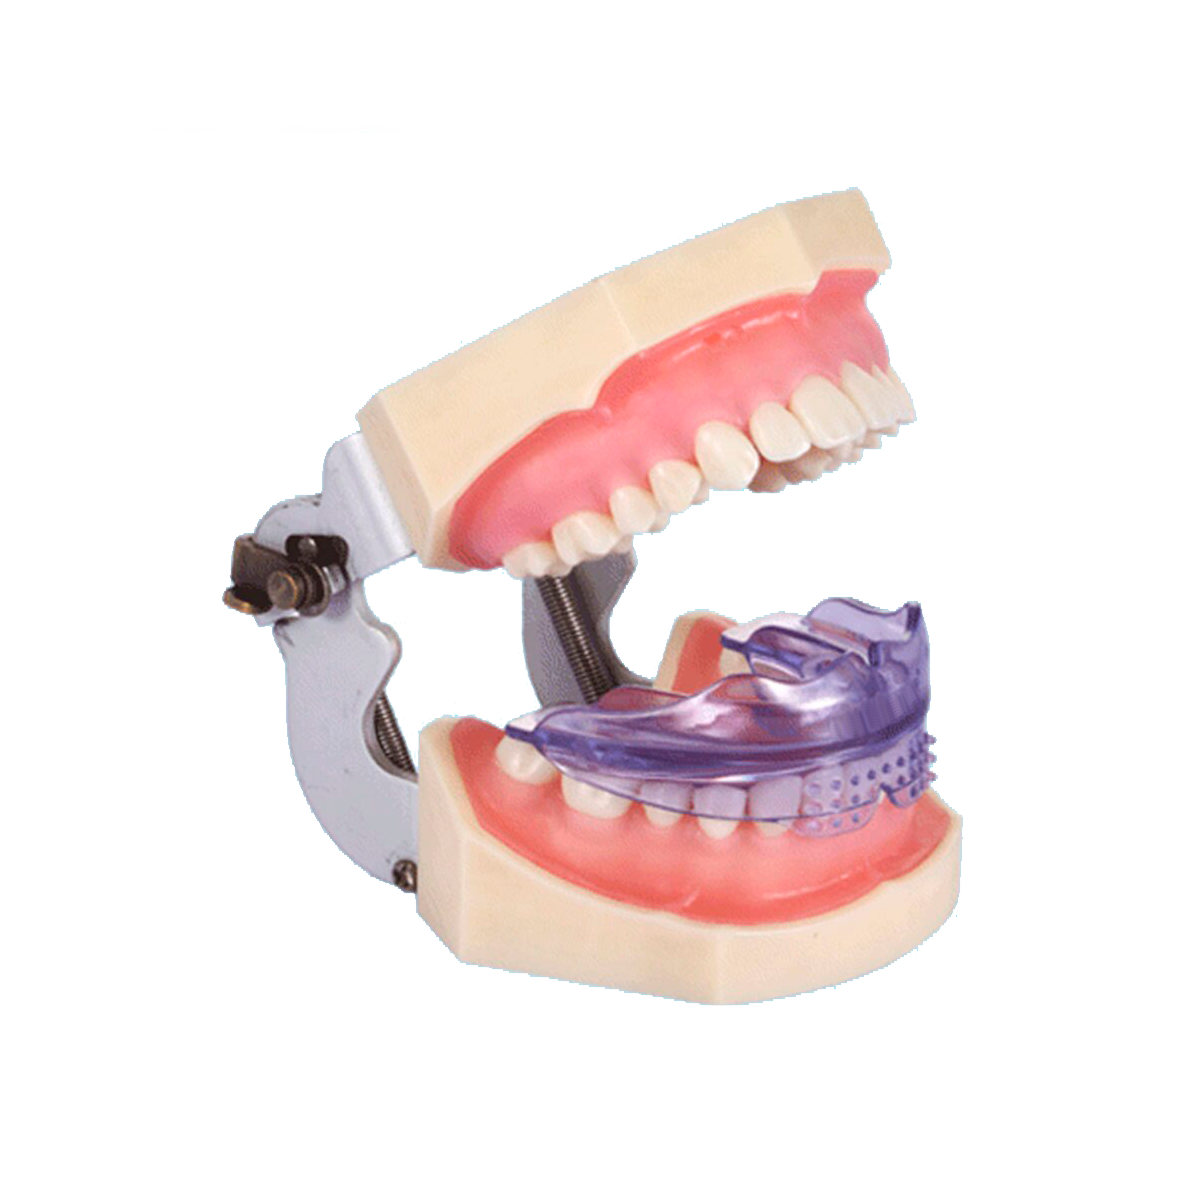 Orthodontic mouthpieces